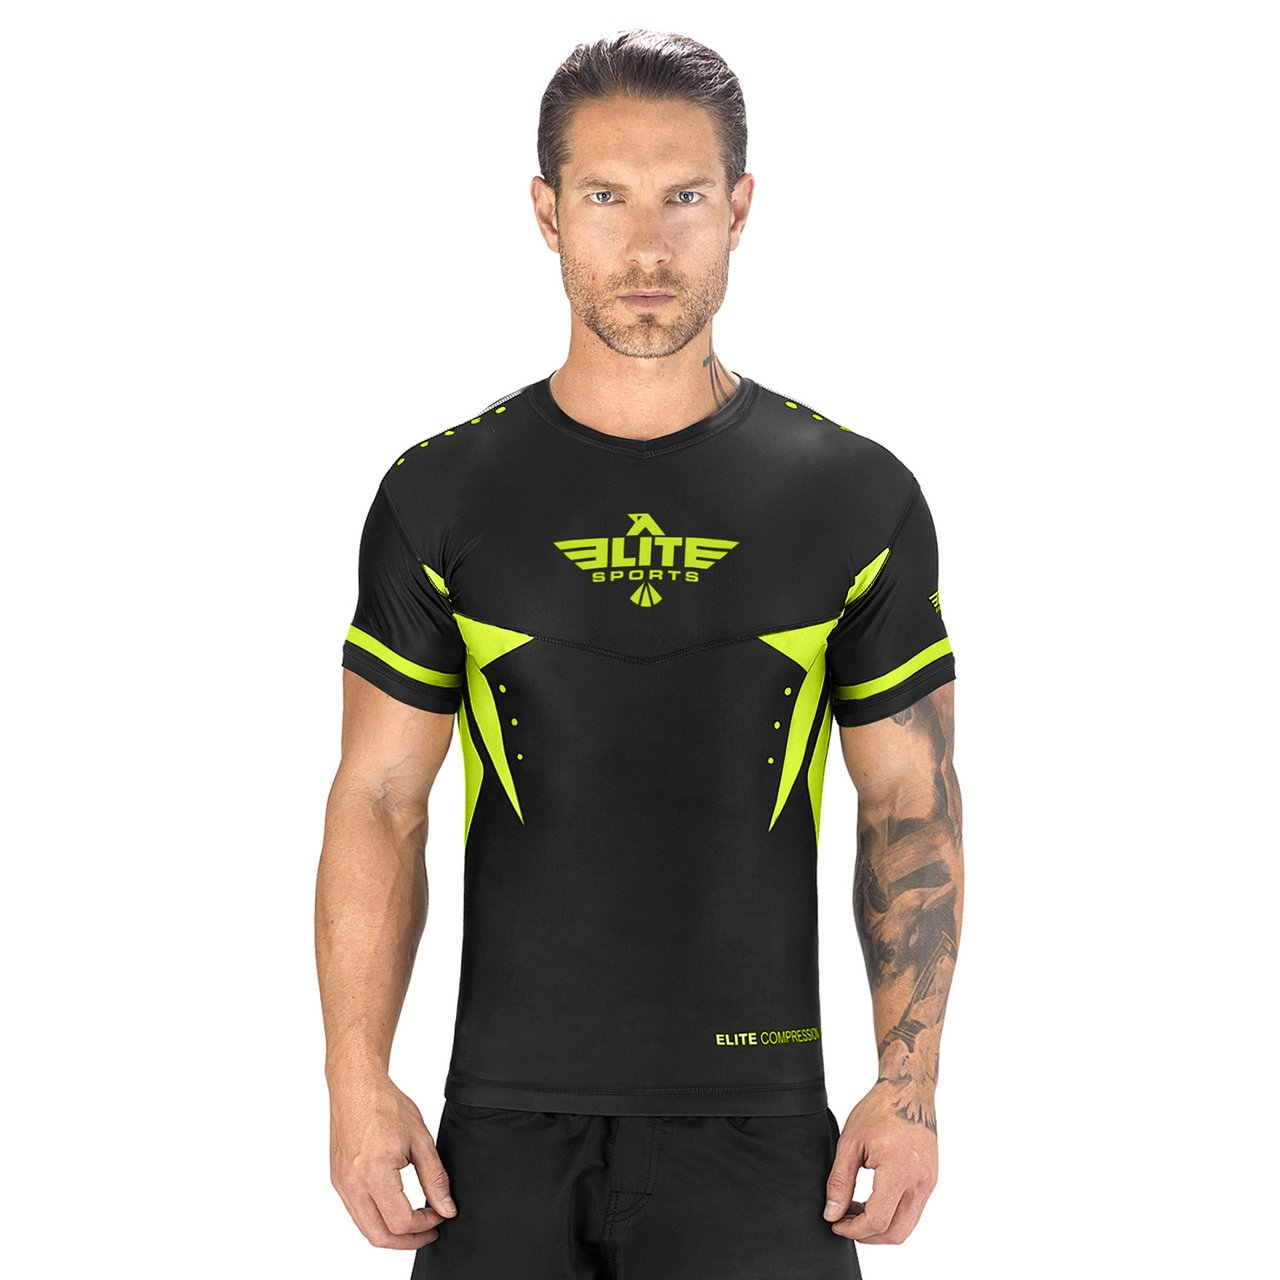 Elite Sports Star Series Sublimation Black/Hi Viz Short Sleeve Training Rash Guard